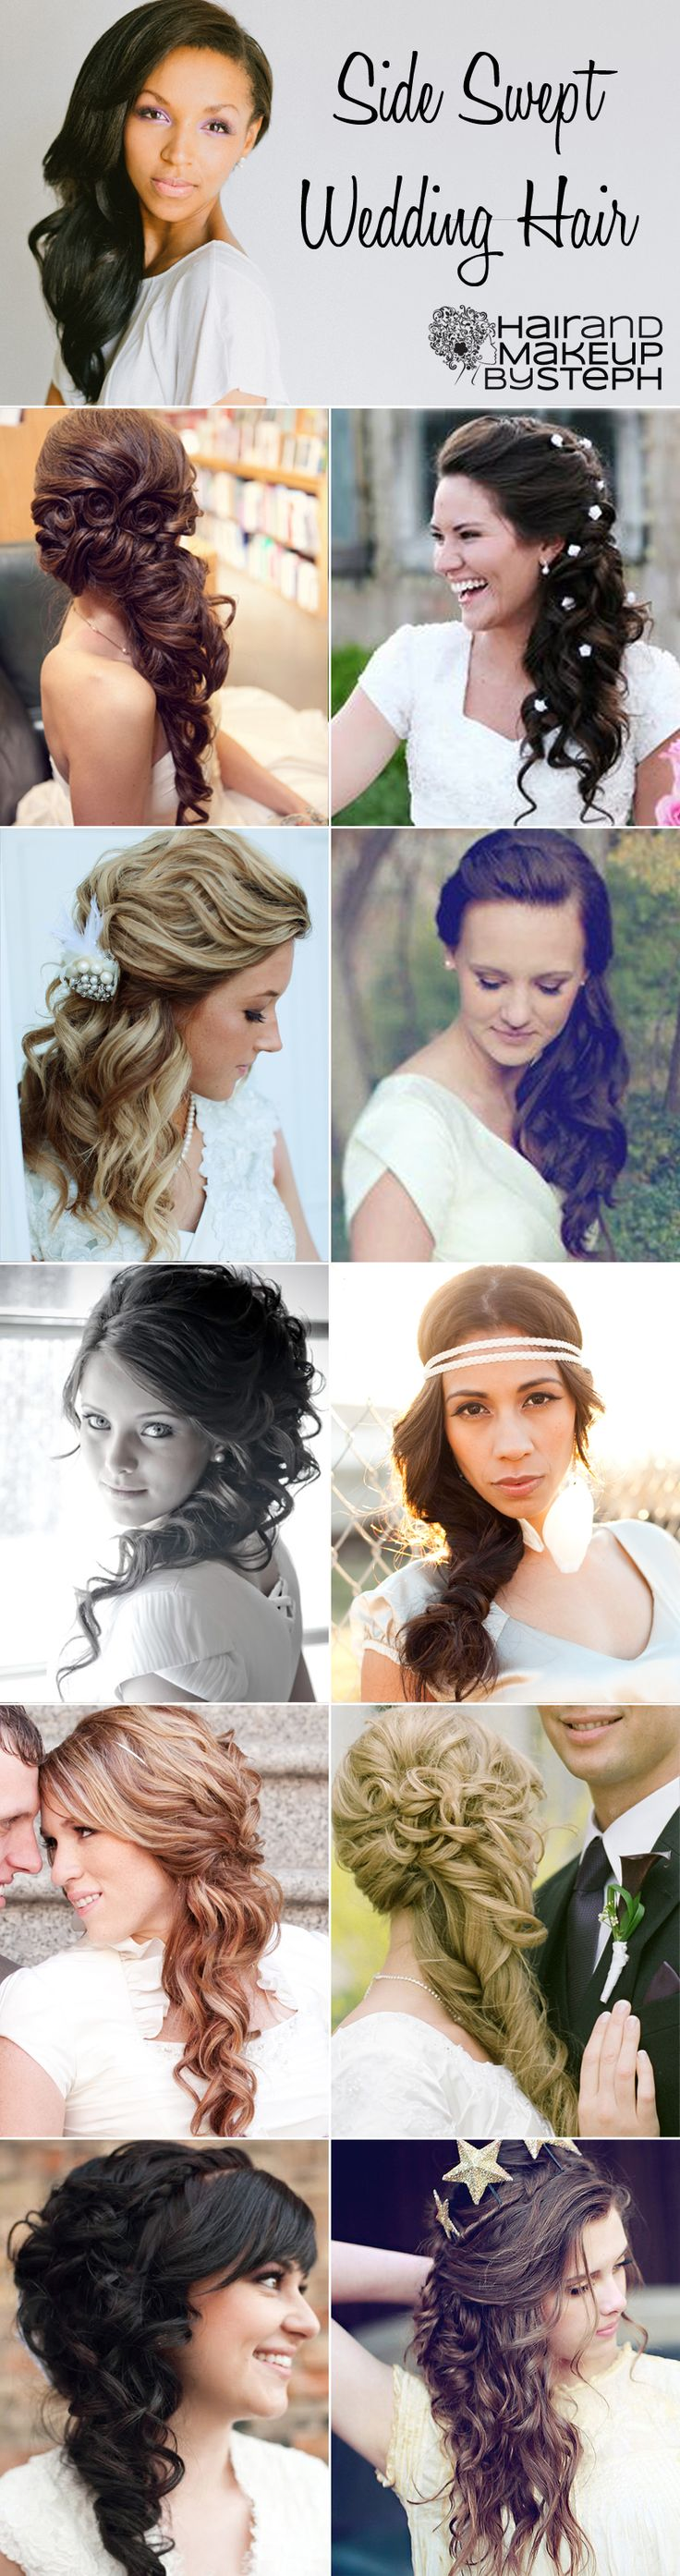 Side swept wedding hair ideas via blog.hairandmakeupbysteph.com